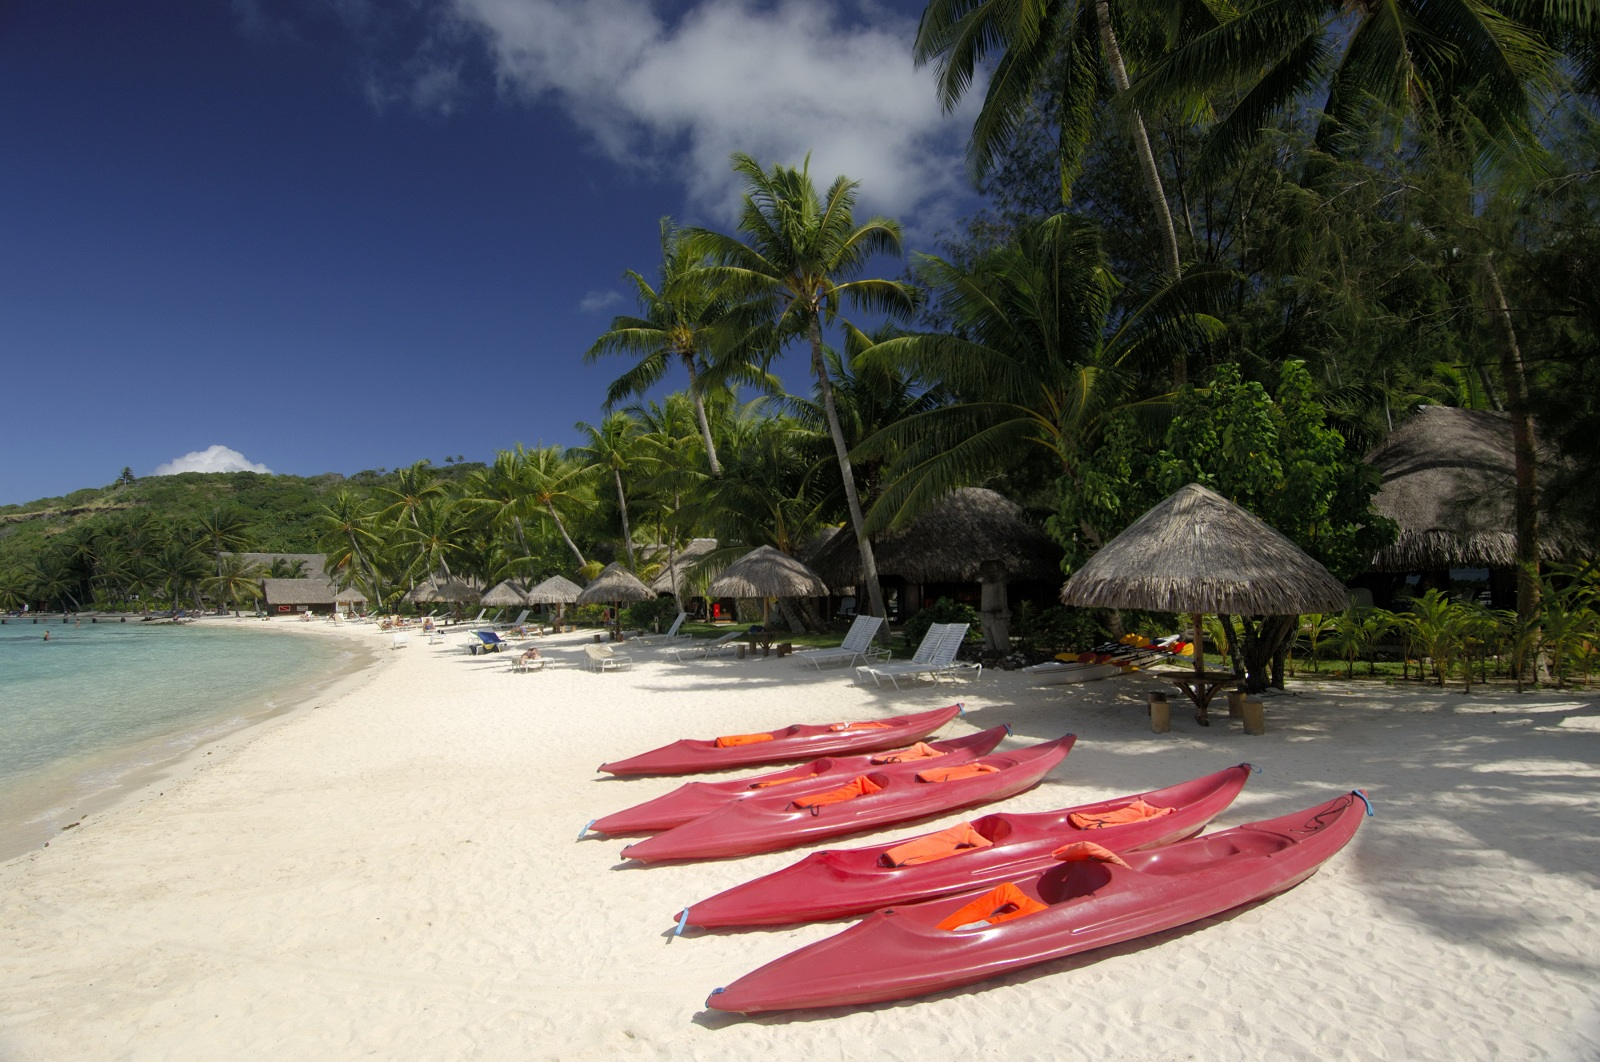 World Best Hotels, Hawaii, Sofitel Bora Bora Marara Beach private island beach